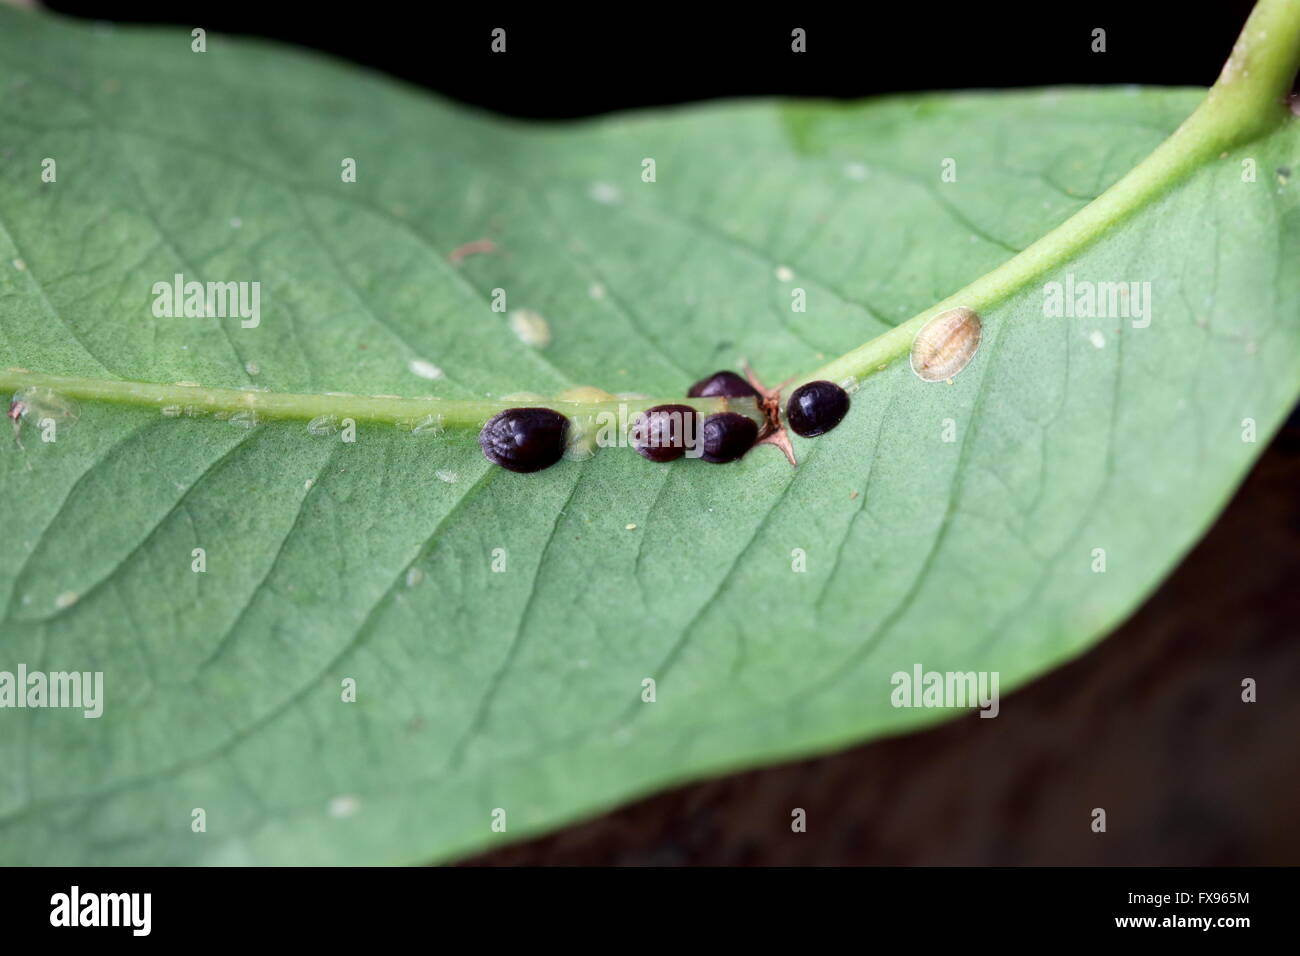 Macro image of Scale insects on Syzgium samarangense  leaf, other names include soft scales, wax scales or tortoise - Stock Image